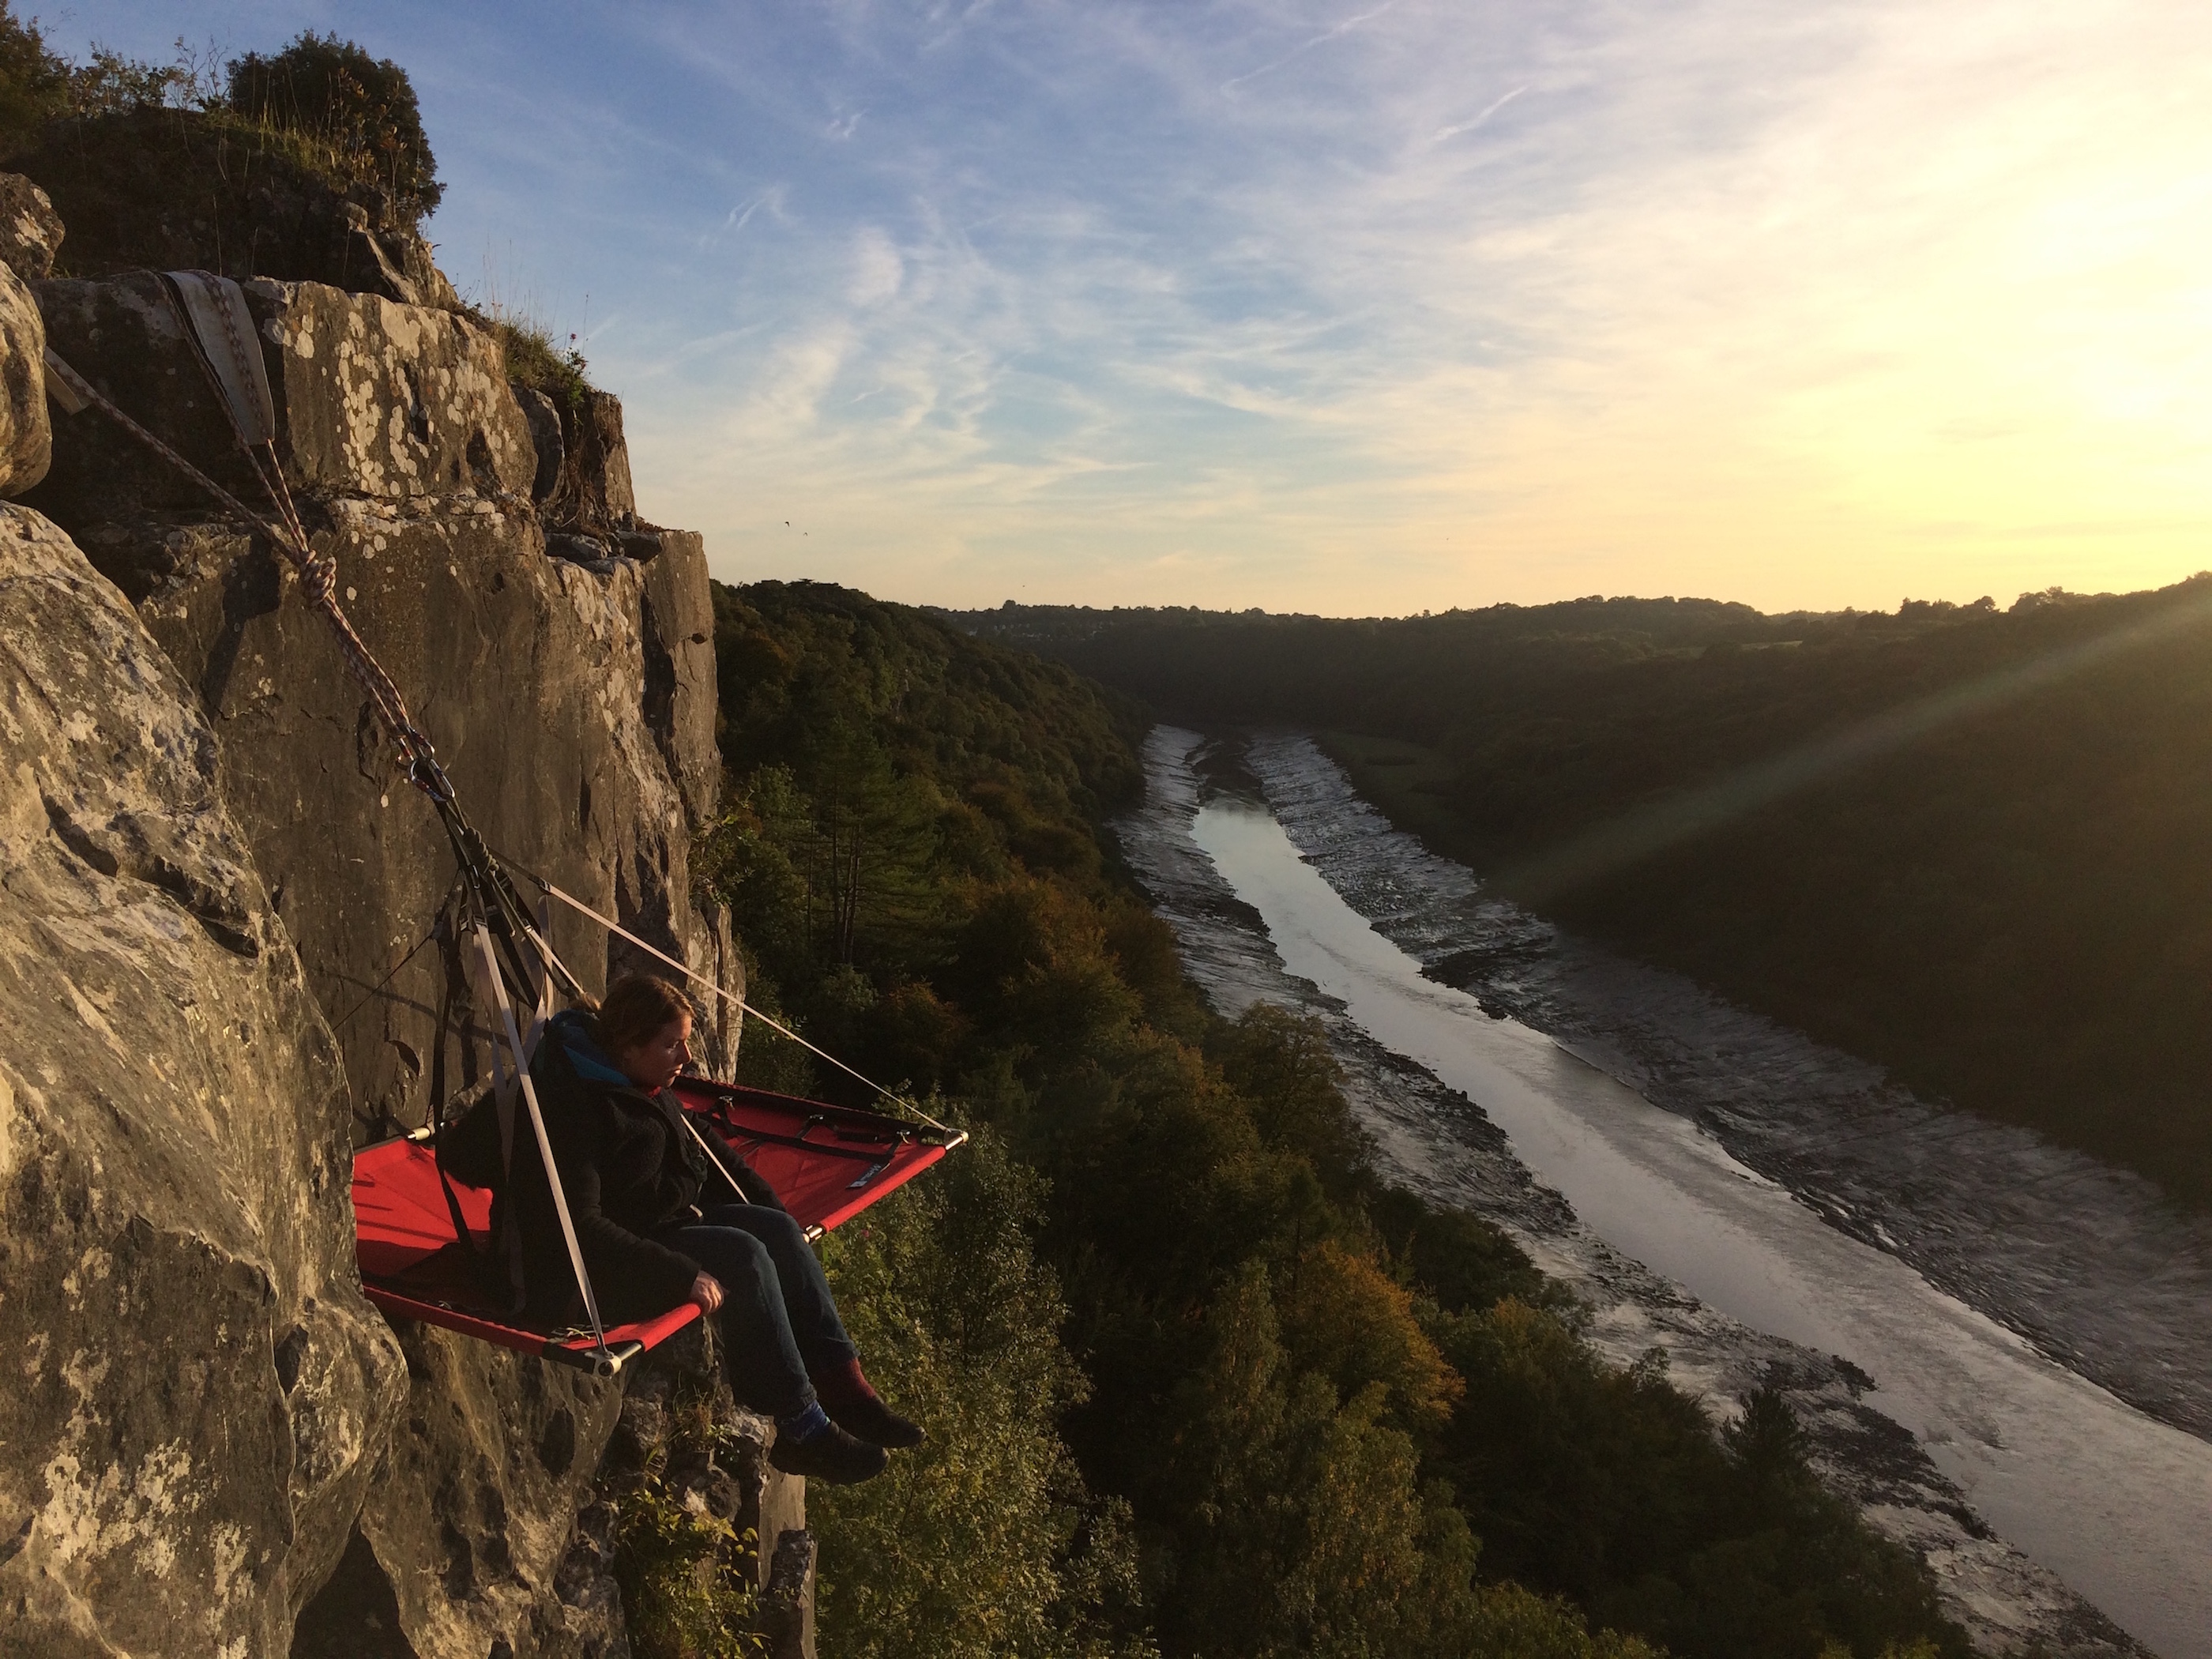 Cliff camping – the ideal Christmas gift for an adrenaline junkie or the height of eccentricity? I slept on a ledge 10 storeys up to find out